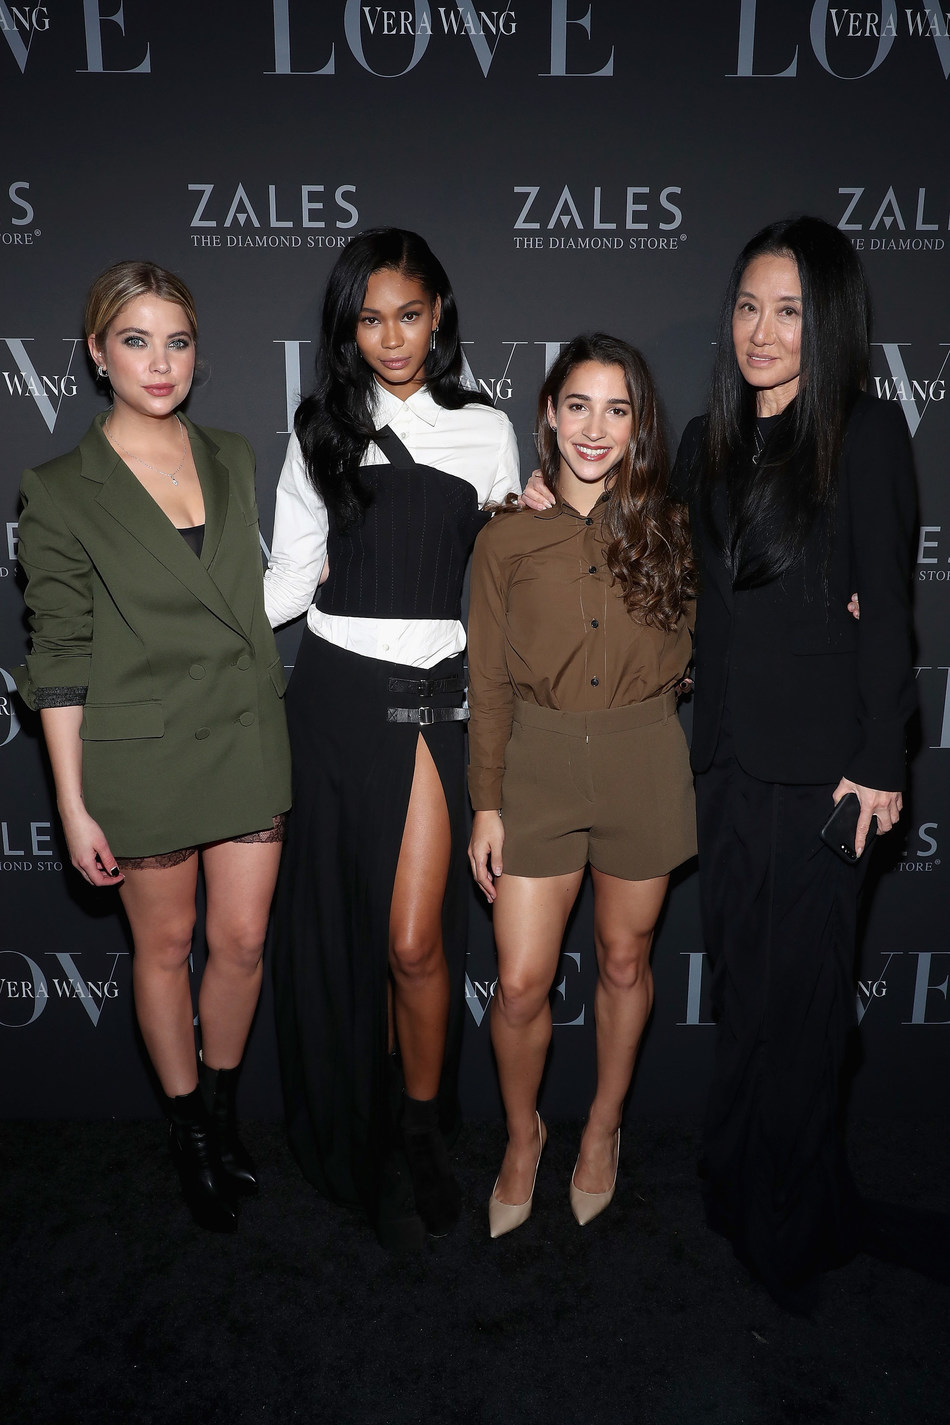 Ashley Benson, Chanel Iman and Aly Raisman join Vera Wang at the Vera Wang LOVE holiday event at Betony in New York City on December 7, 2016.